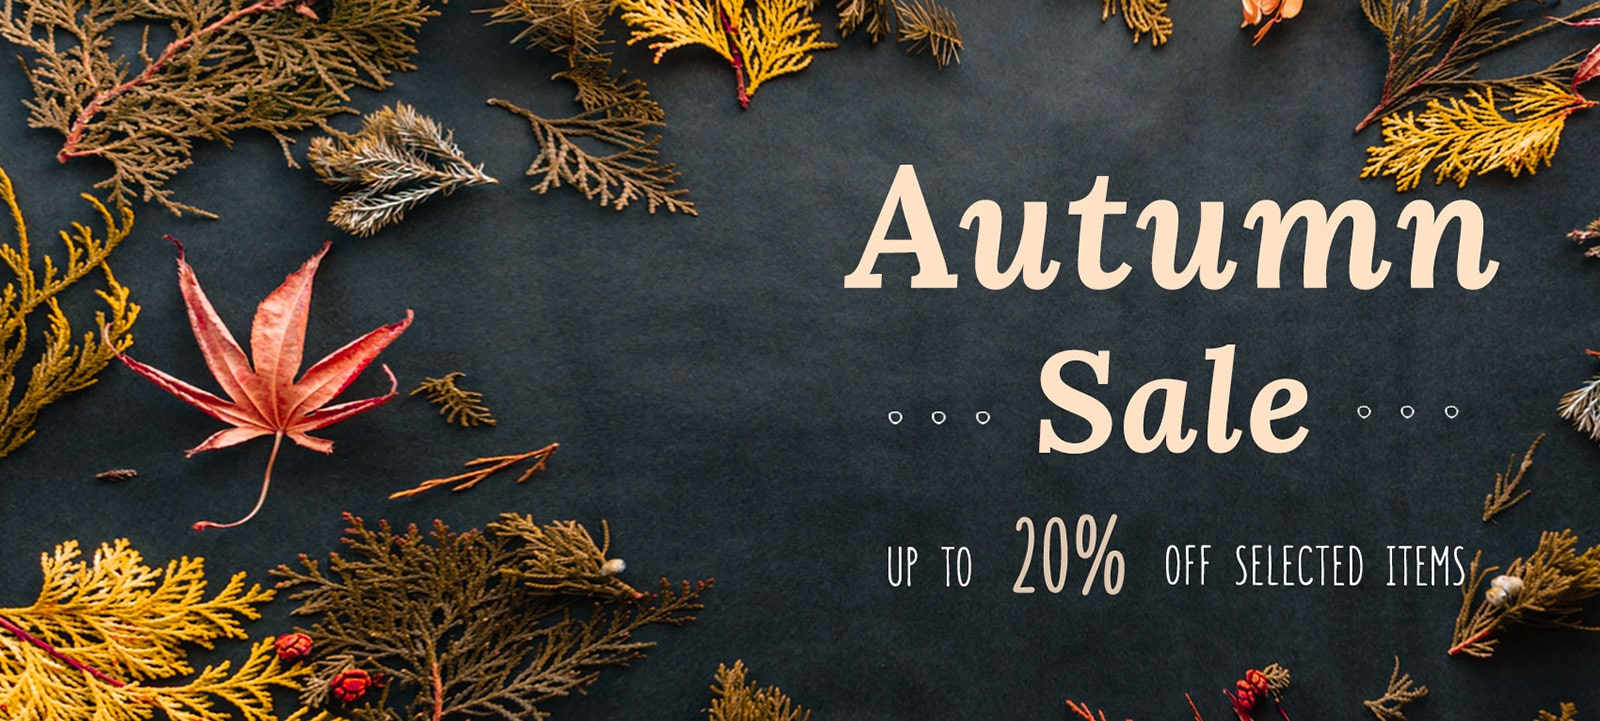 Home of Wool natural bedding autumn sale